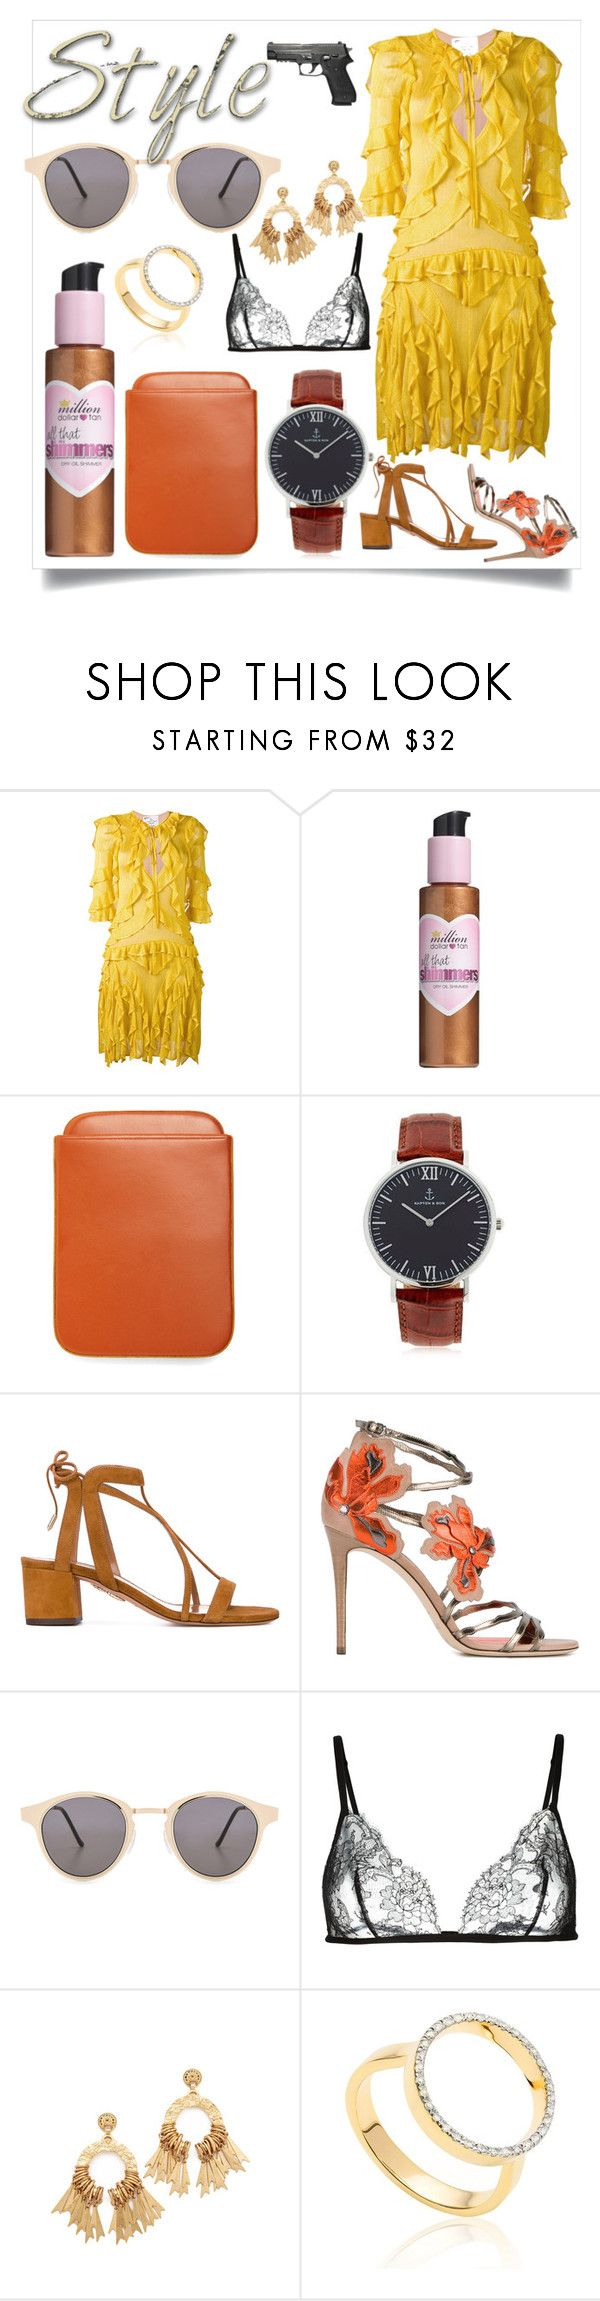 """SUMMER STYLE"" by justinallison ❤ liked on Polyvore featuring Dsquared2, Million Dollar Tan, Brooks Brothers, Kapten & Son, Aquazzura, Jimmy Choo, Spitfire, Carine Gilson, Elizabeth Cole and Monica Vinader"